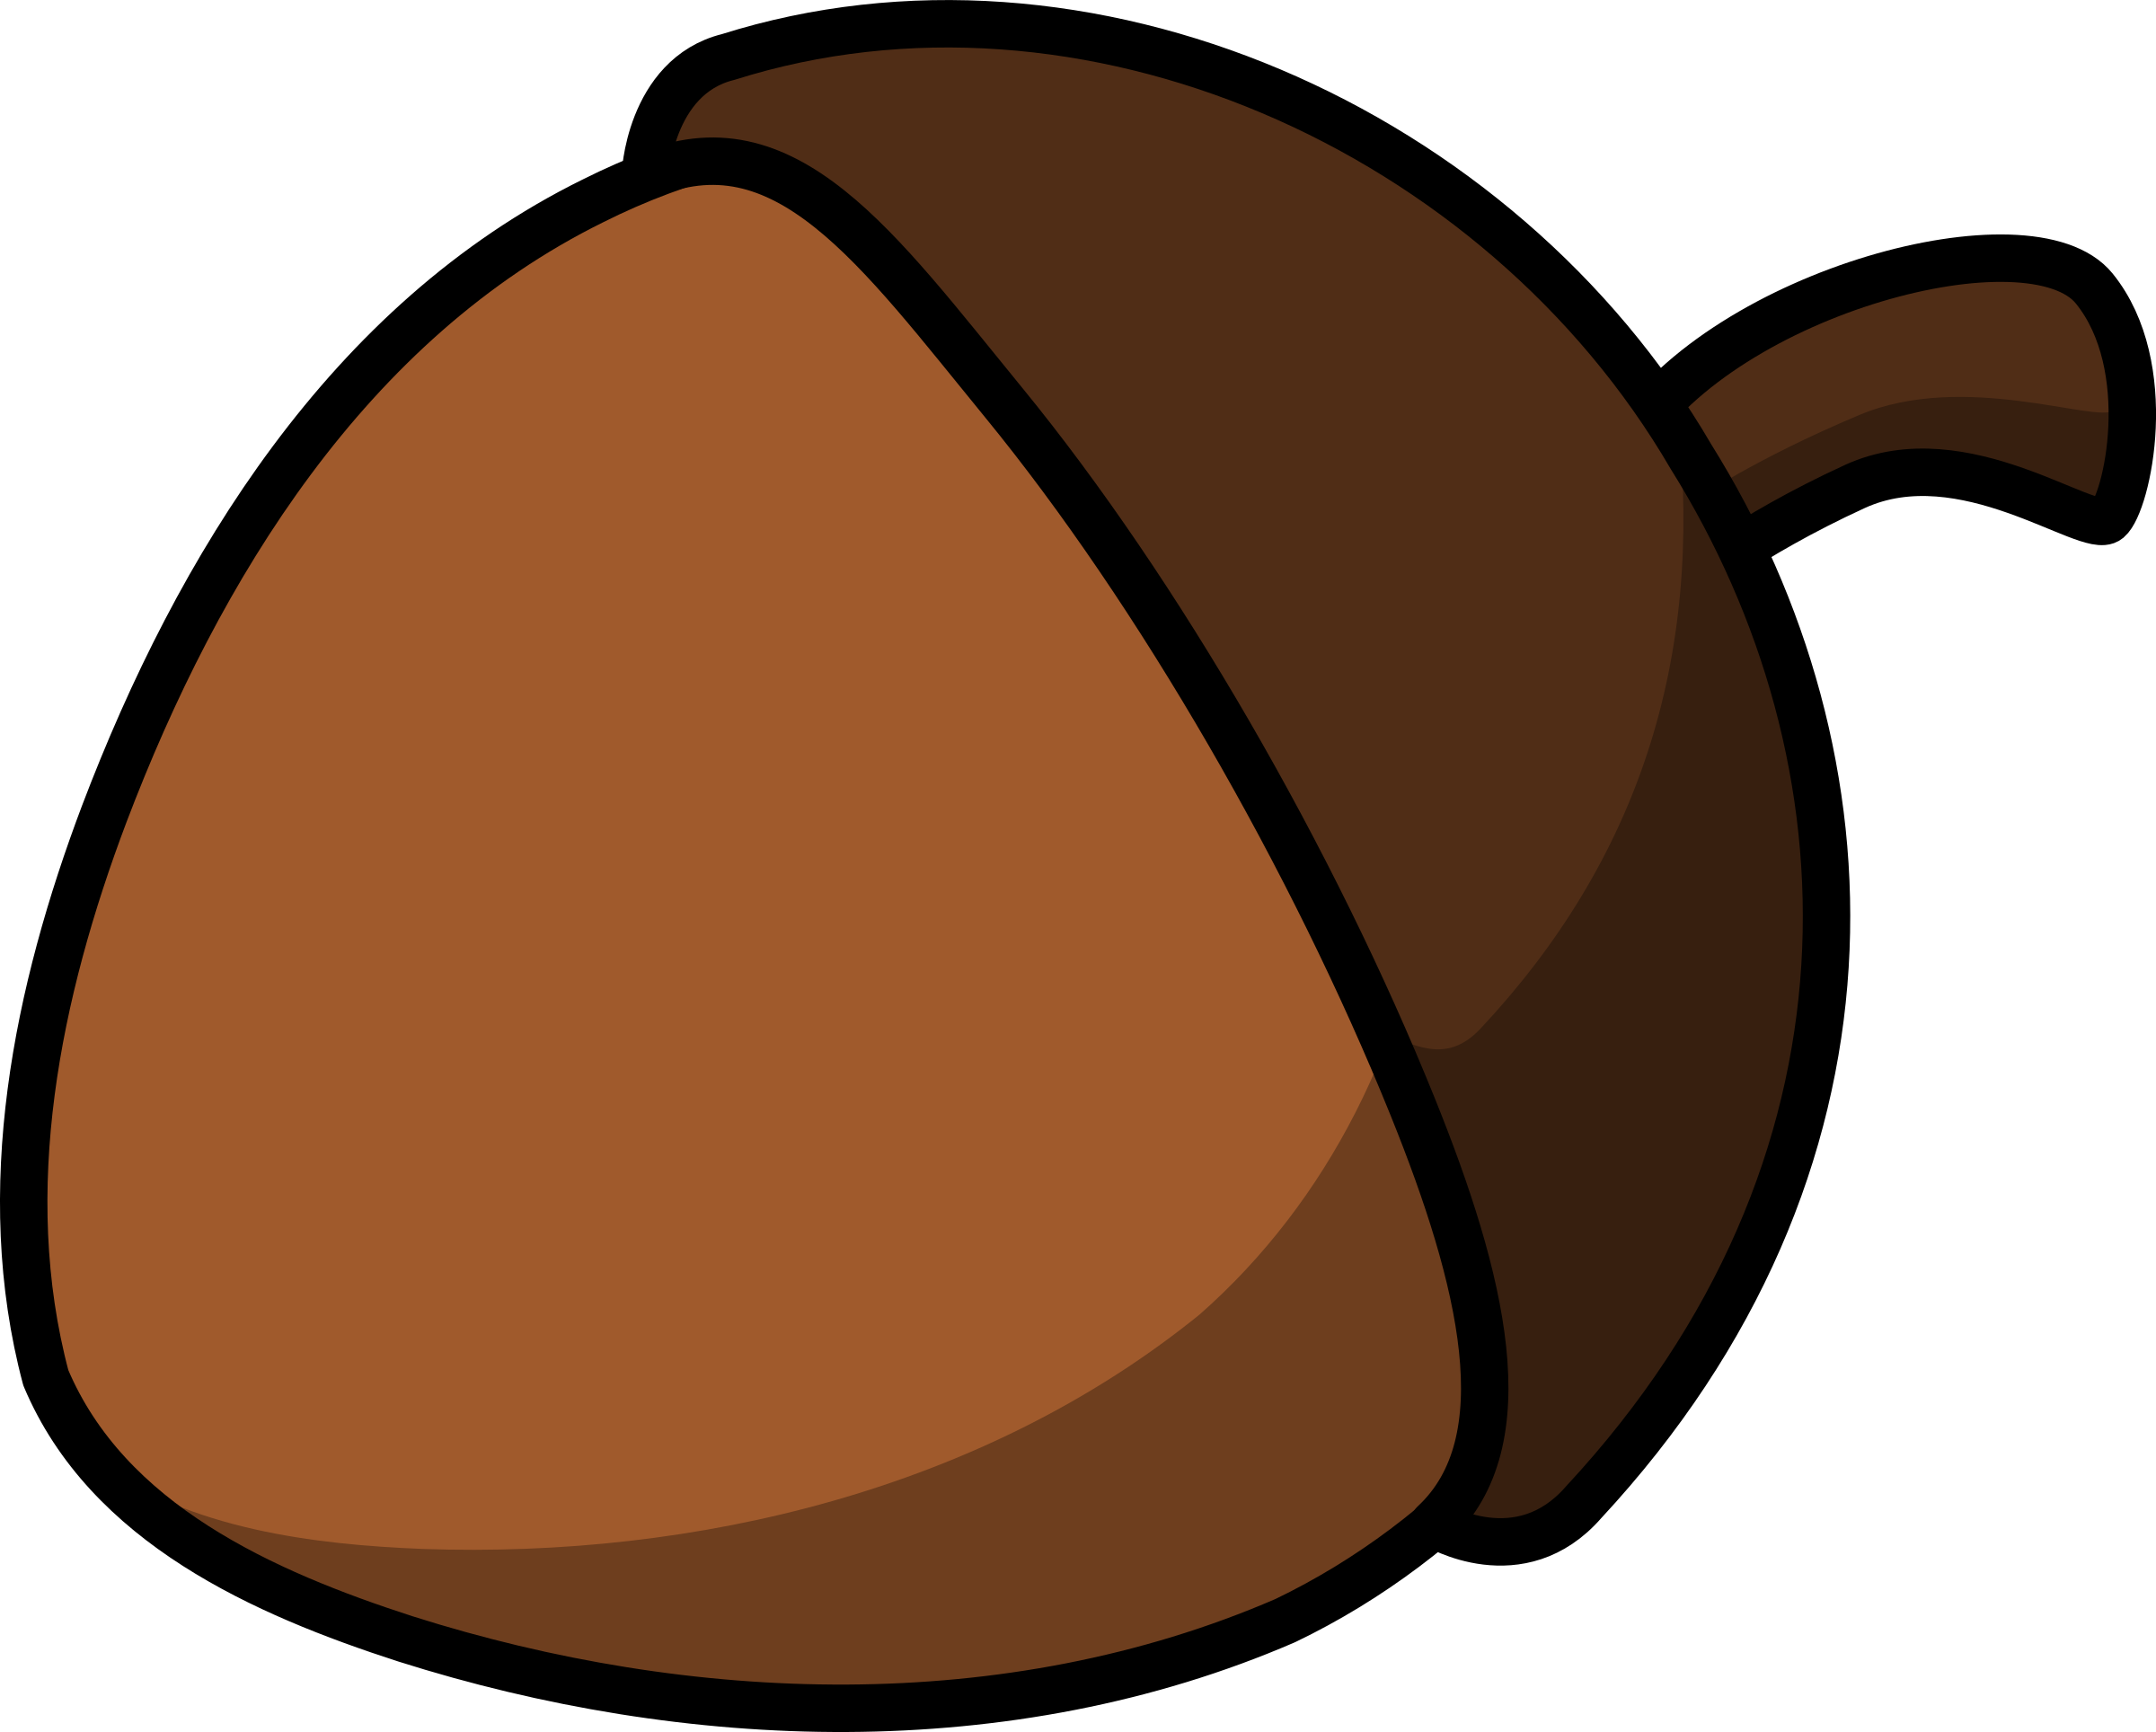 Acorn icons png free. Storytime clipart cartoon